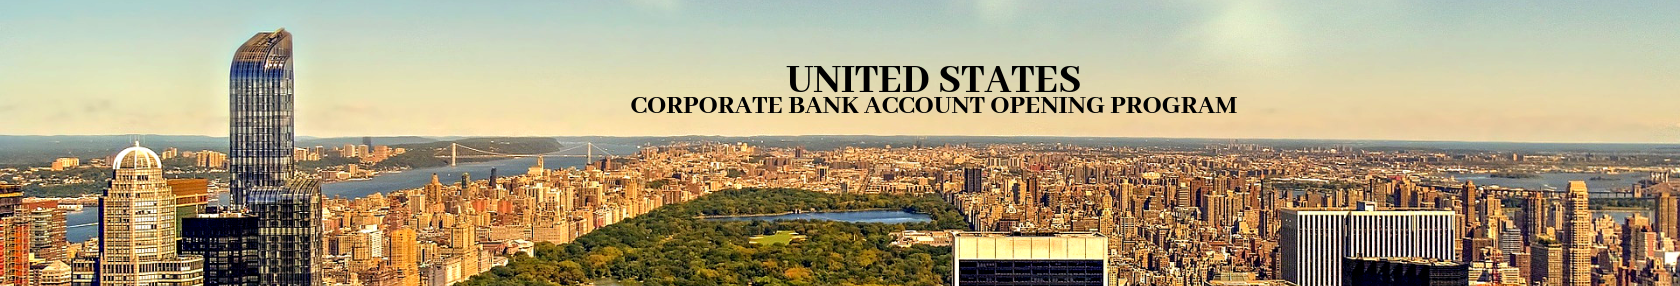 United States, Corporate Bank Account Opening